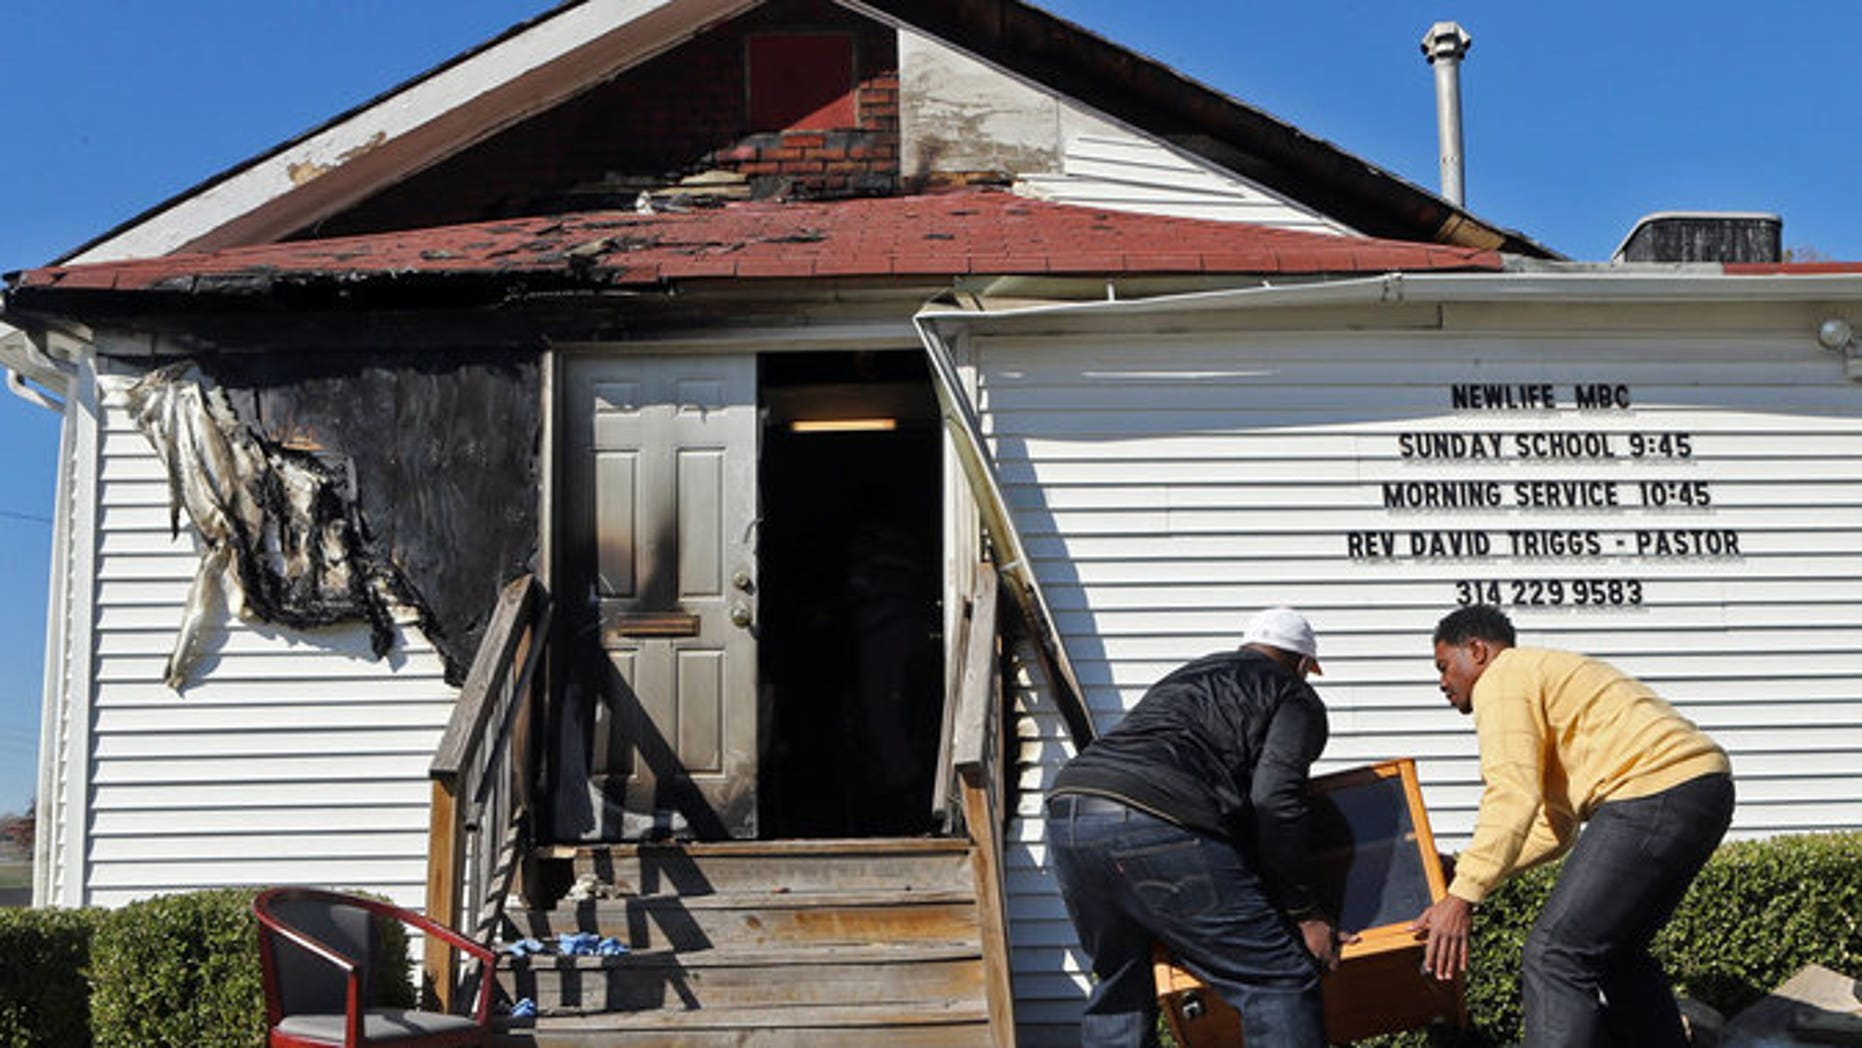 Damage to the New Life Missionary Baptist Church in St. Louis after a fire. (J.B. Forbes/St. Louis Post-Dispatch via AP)